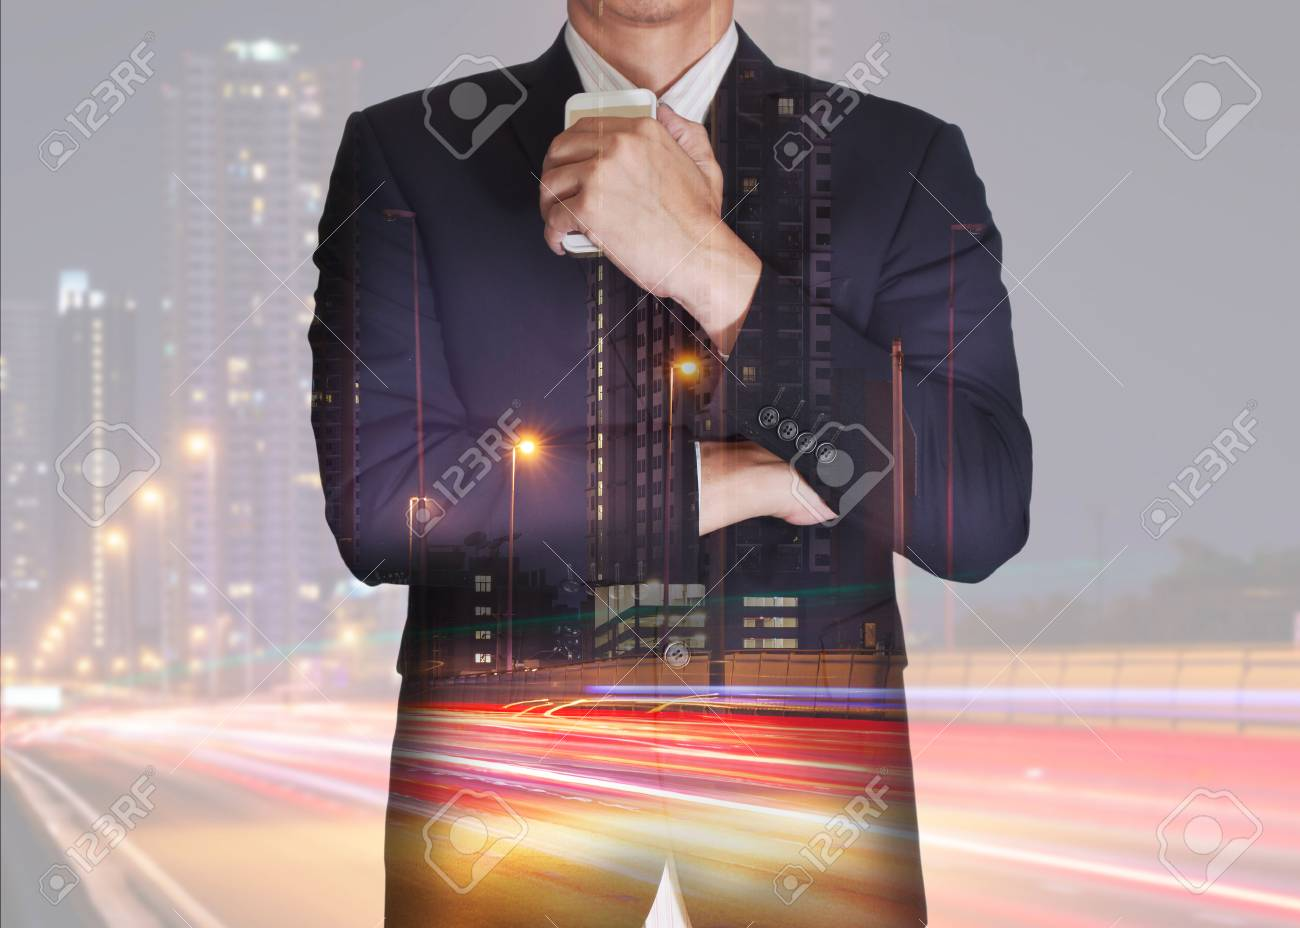 da8af2664fdef Double exposure of businessman stand up and think idea about business,  light trails on the